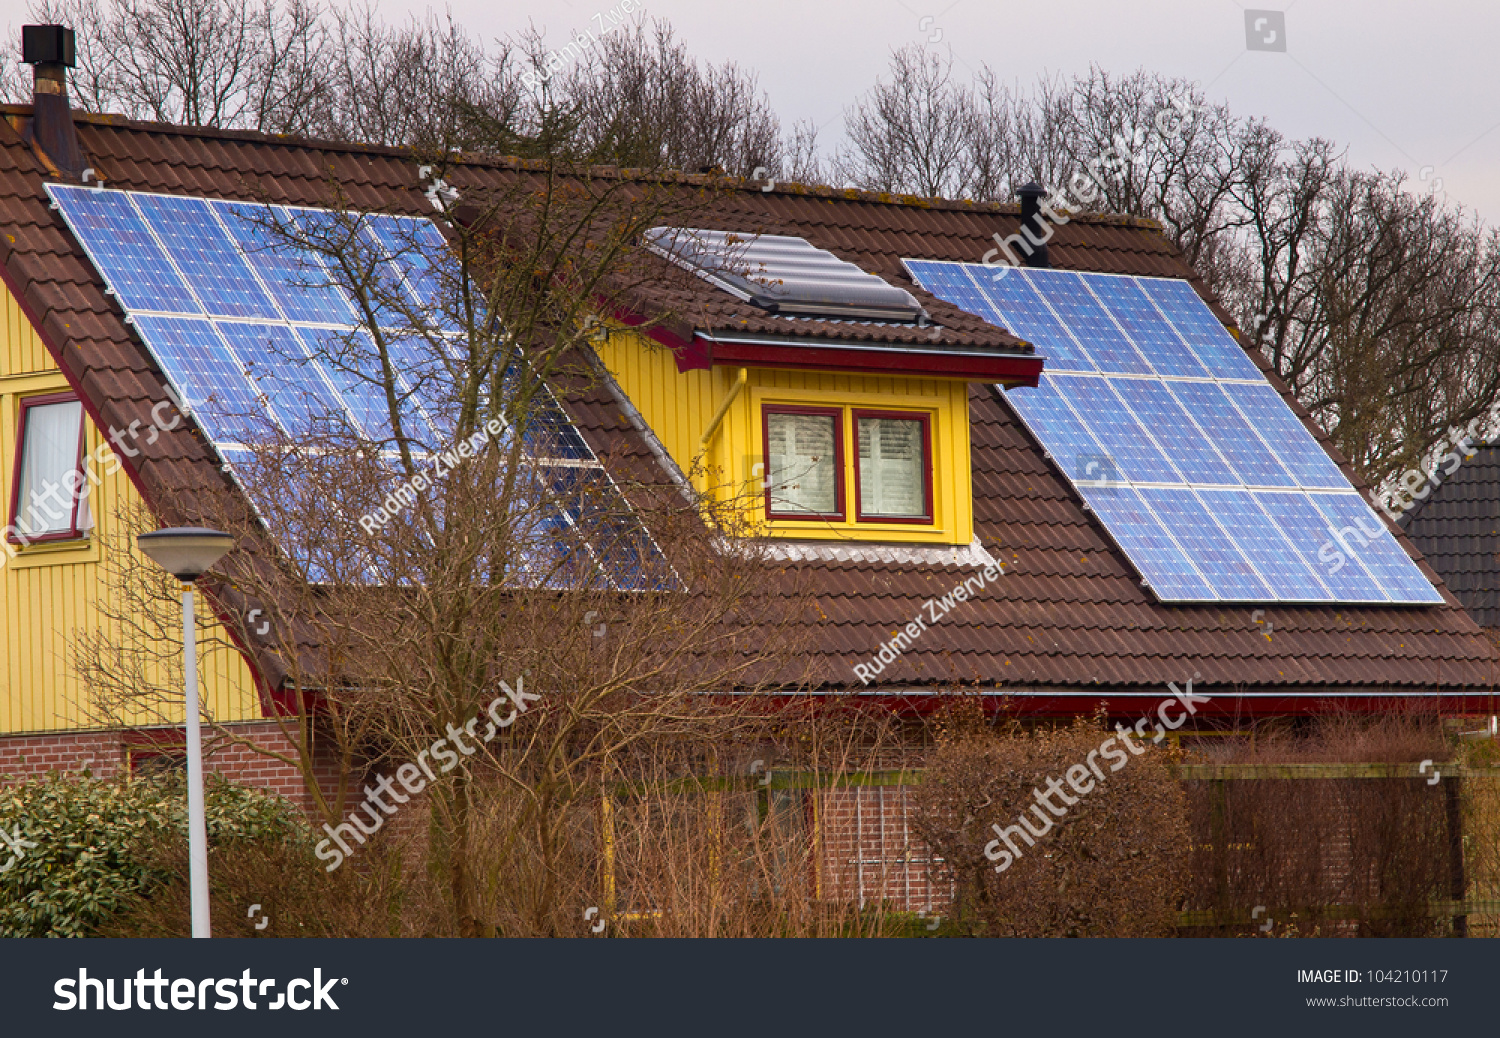 Solar Panels On A Colorful Modern House Stock Photo